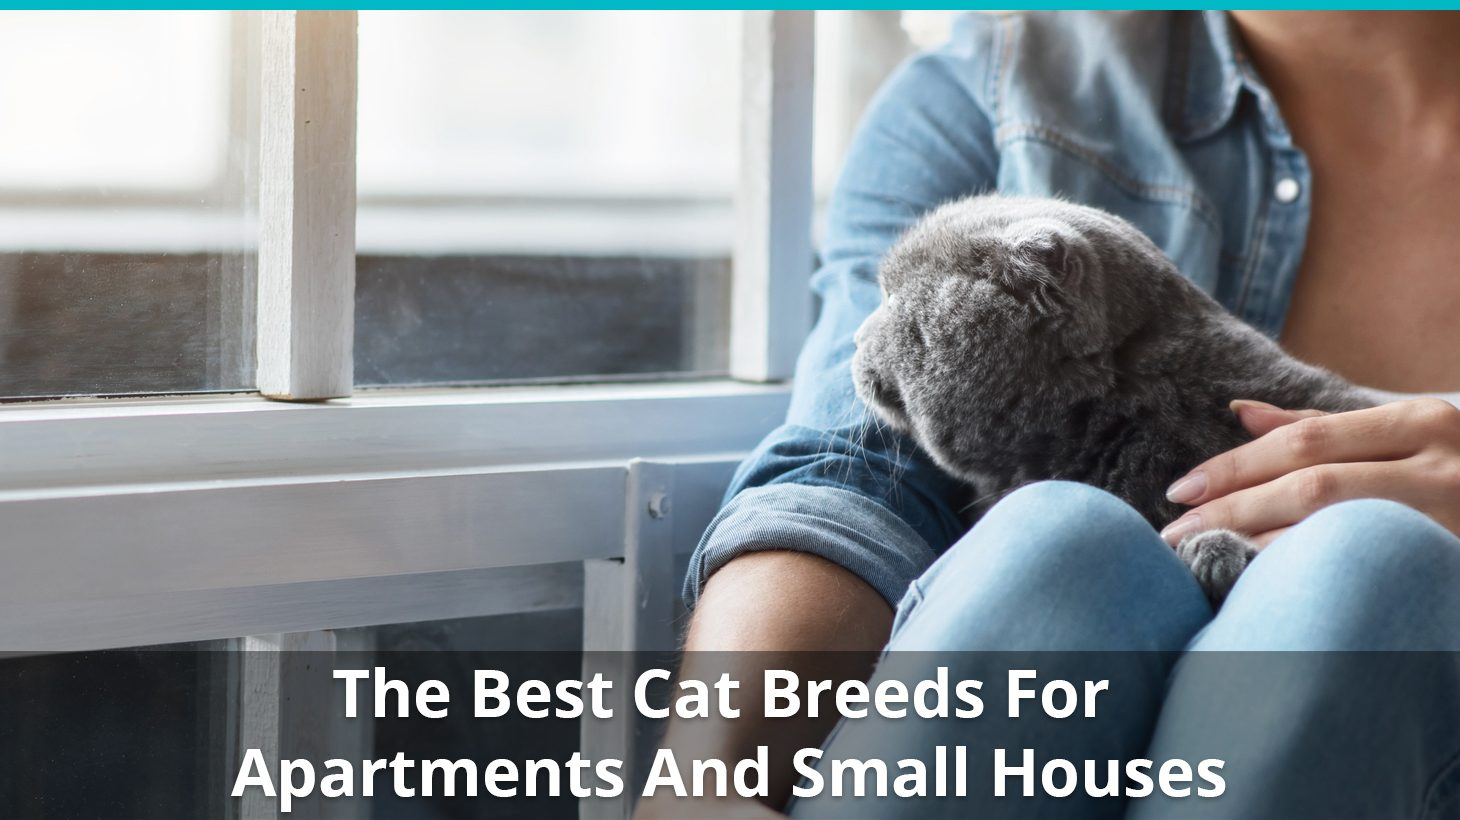 The Best Low Maintenance Indoor Cat Breeds For Apartments And Small Houses